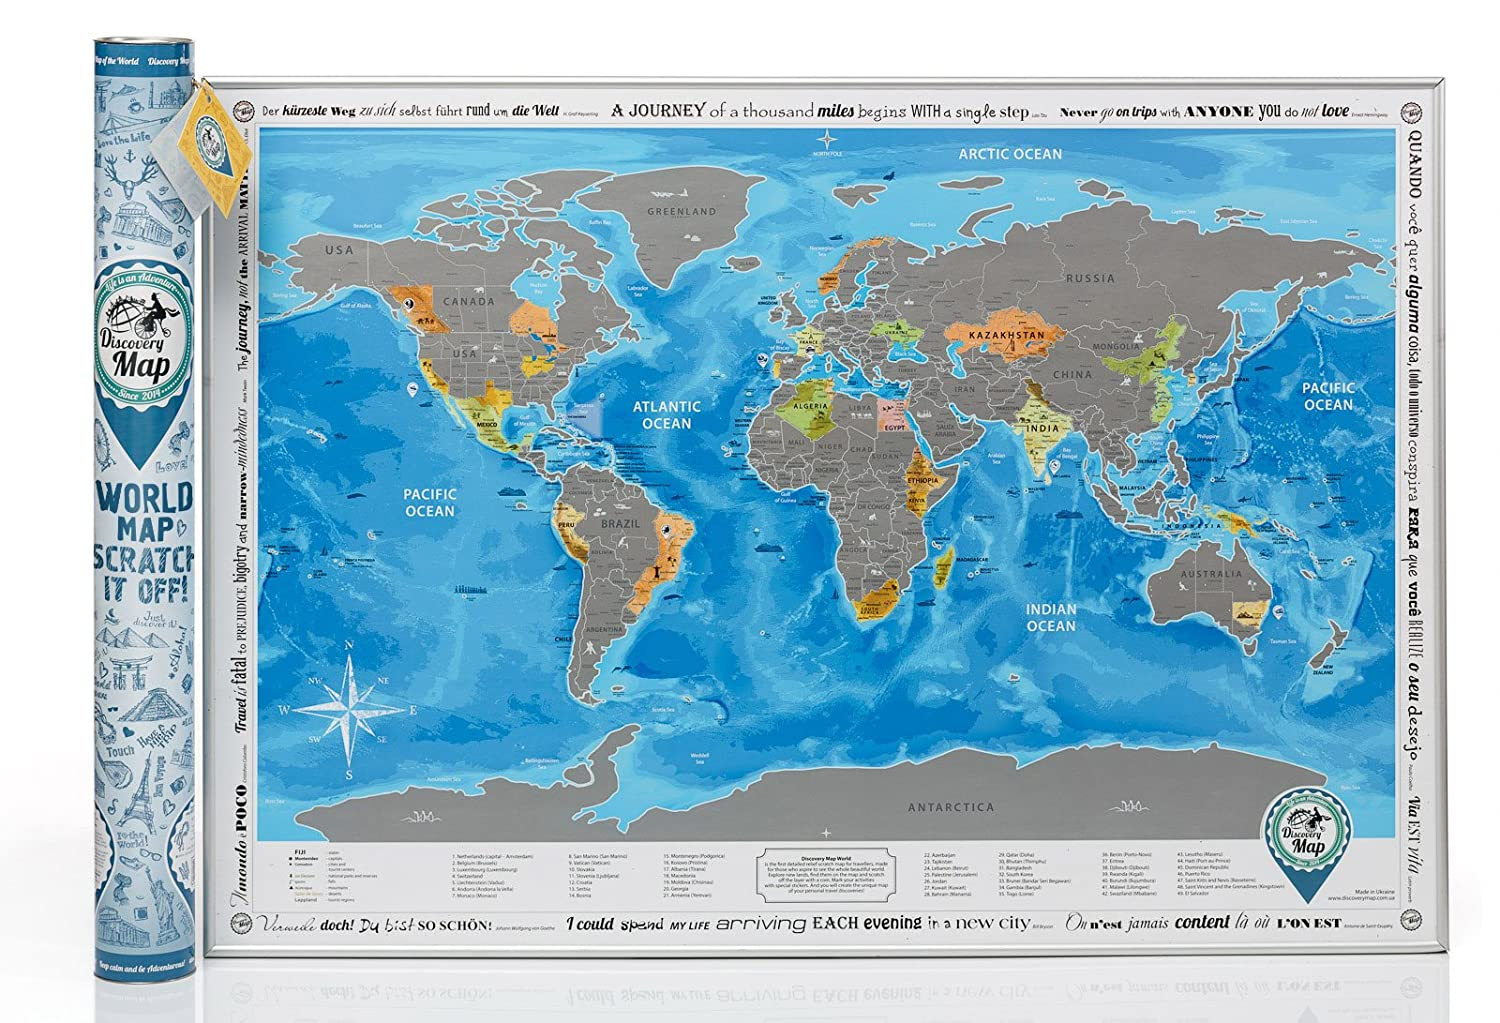 Discovery Map World with Scratch off Detailed Travel Content